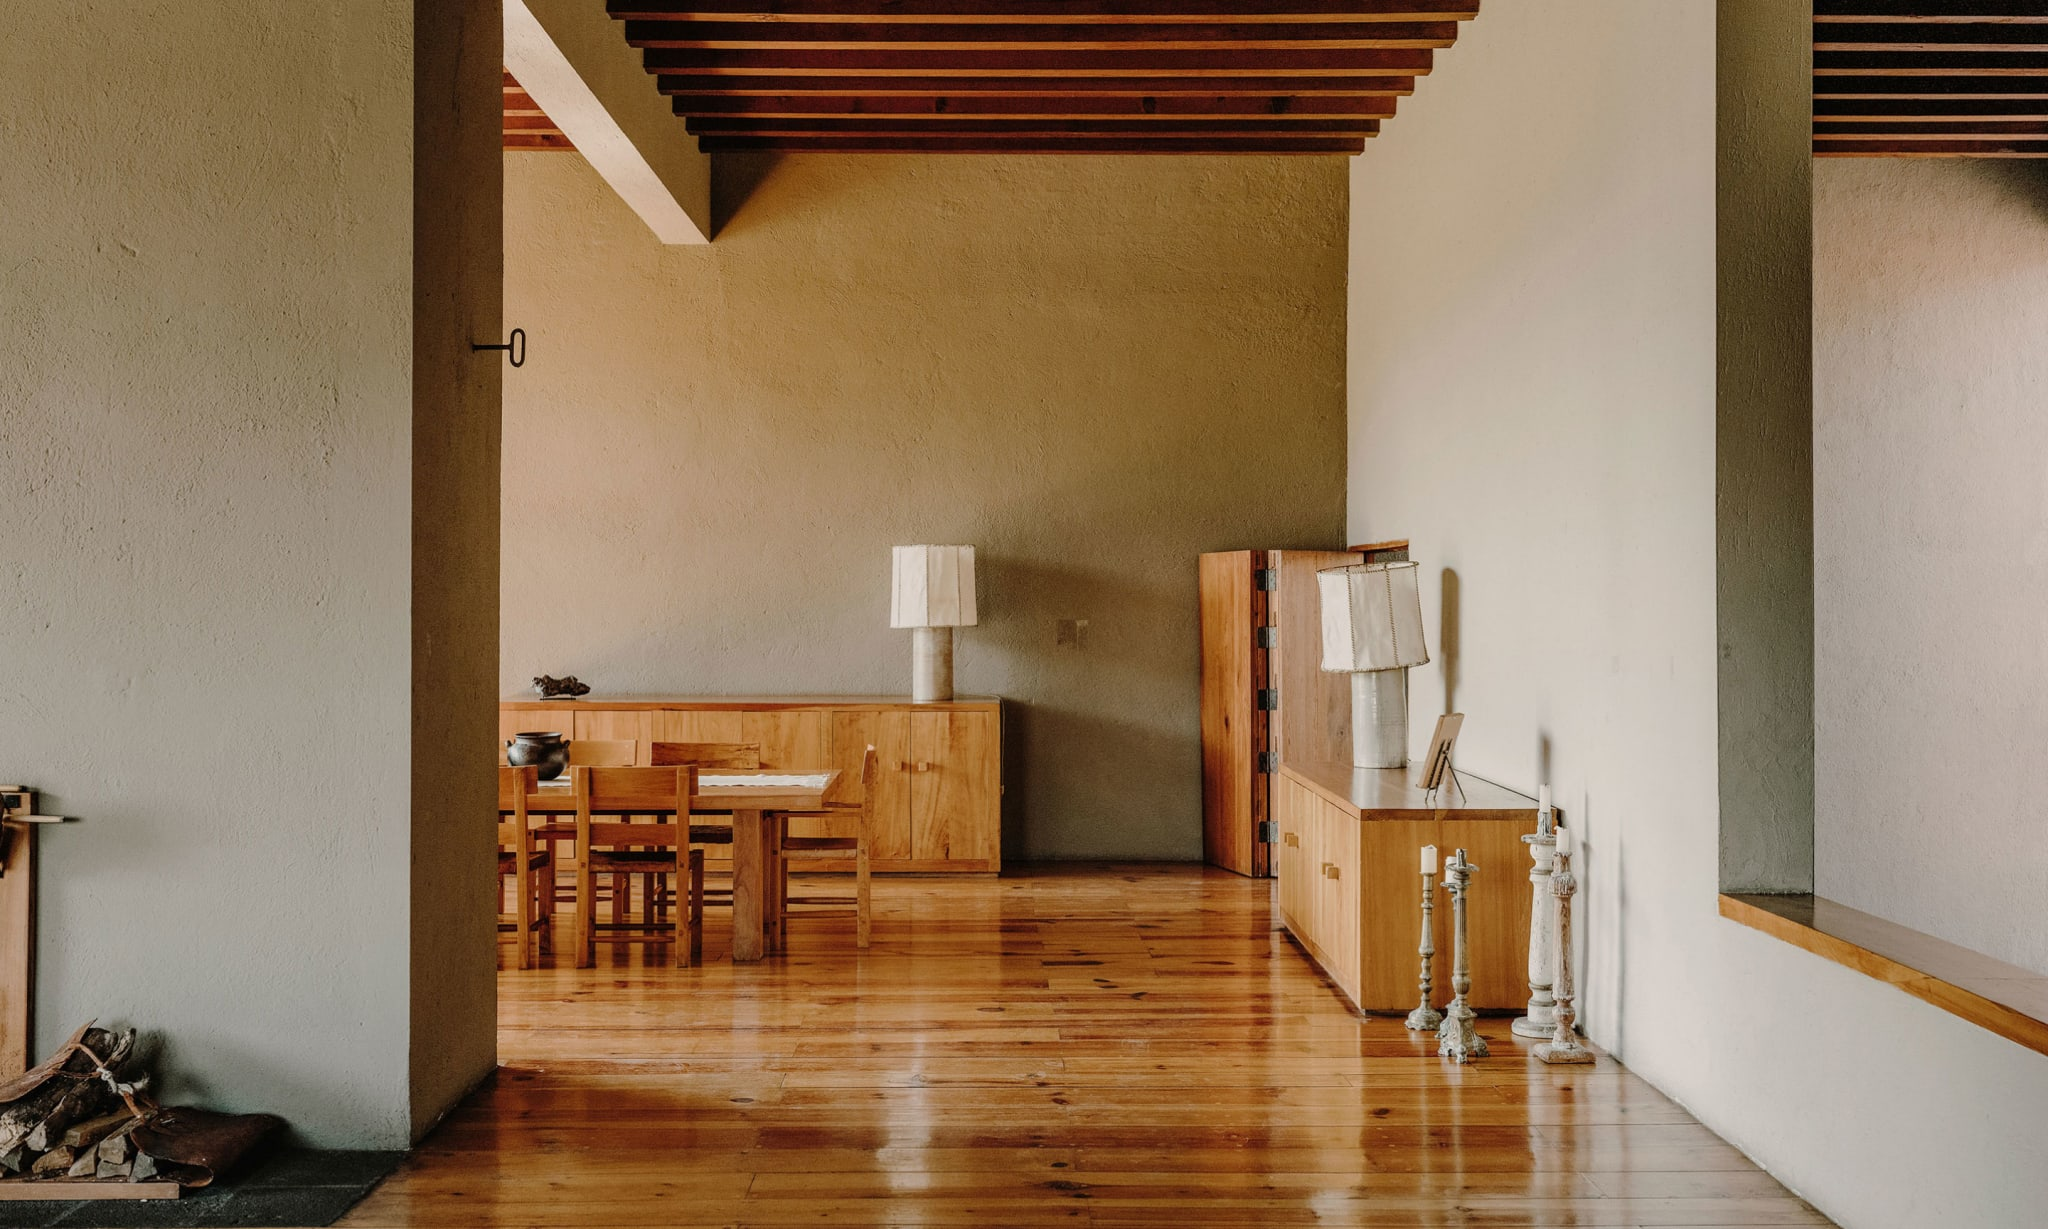 A sparse wooden home interior.